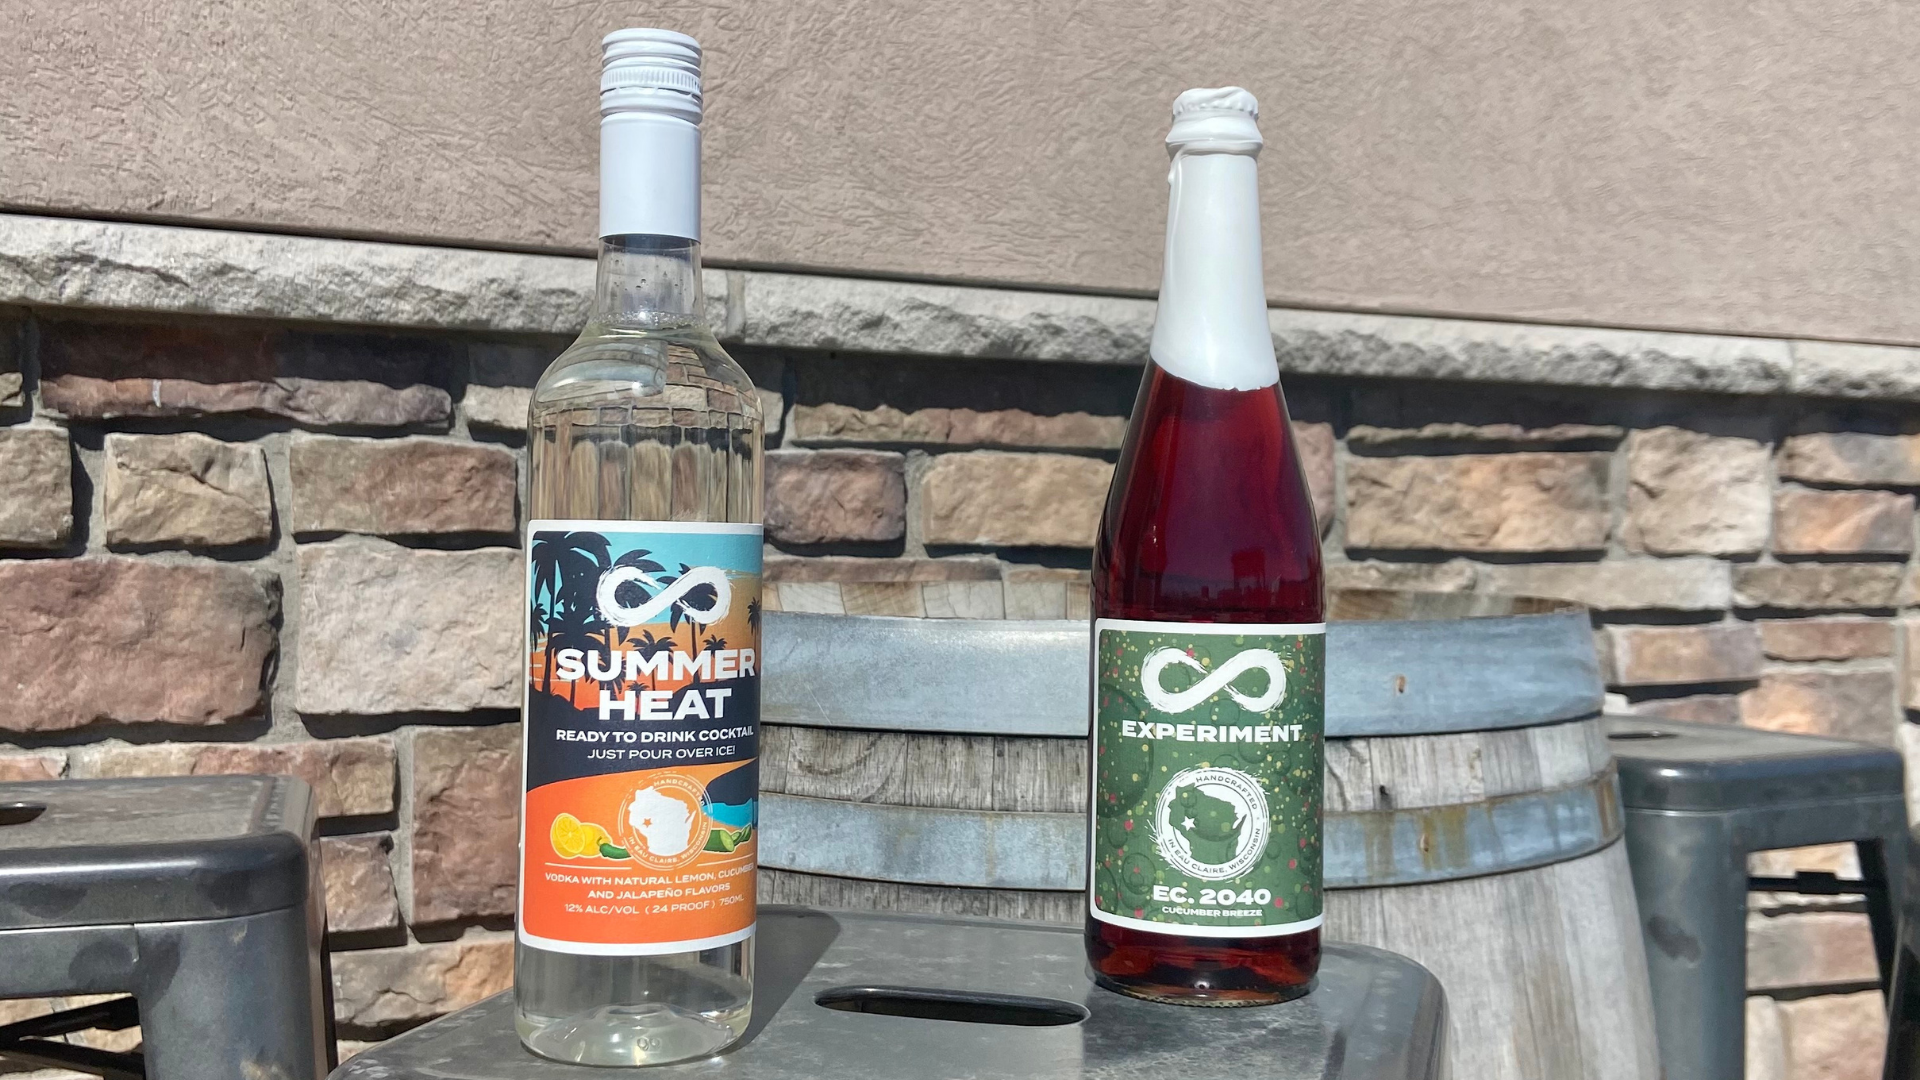 Cucumber Breeze & Summer Heat Ready to Drink Release